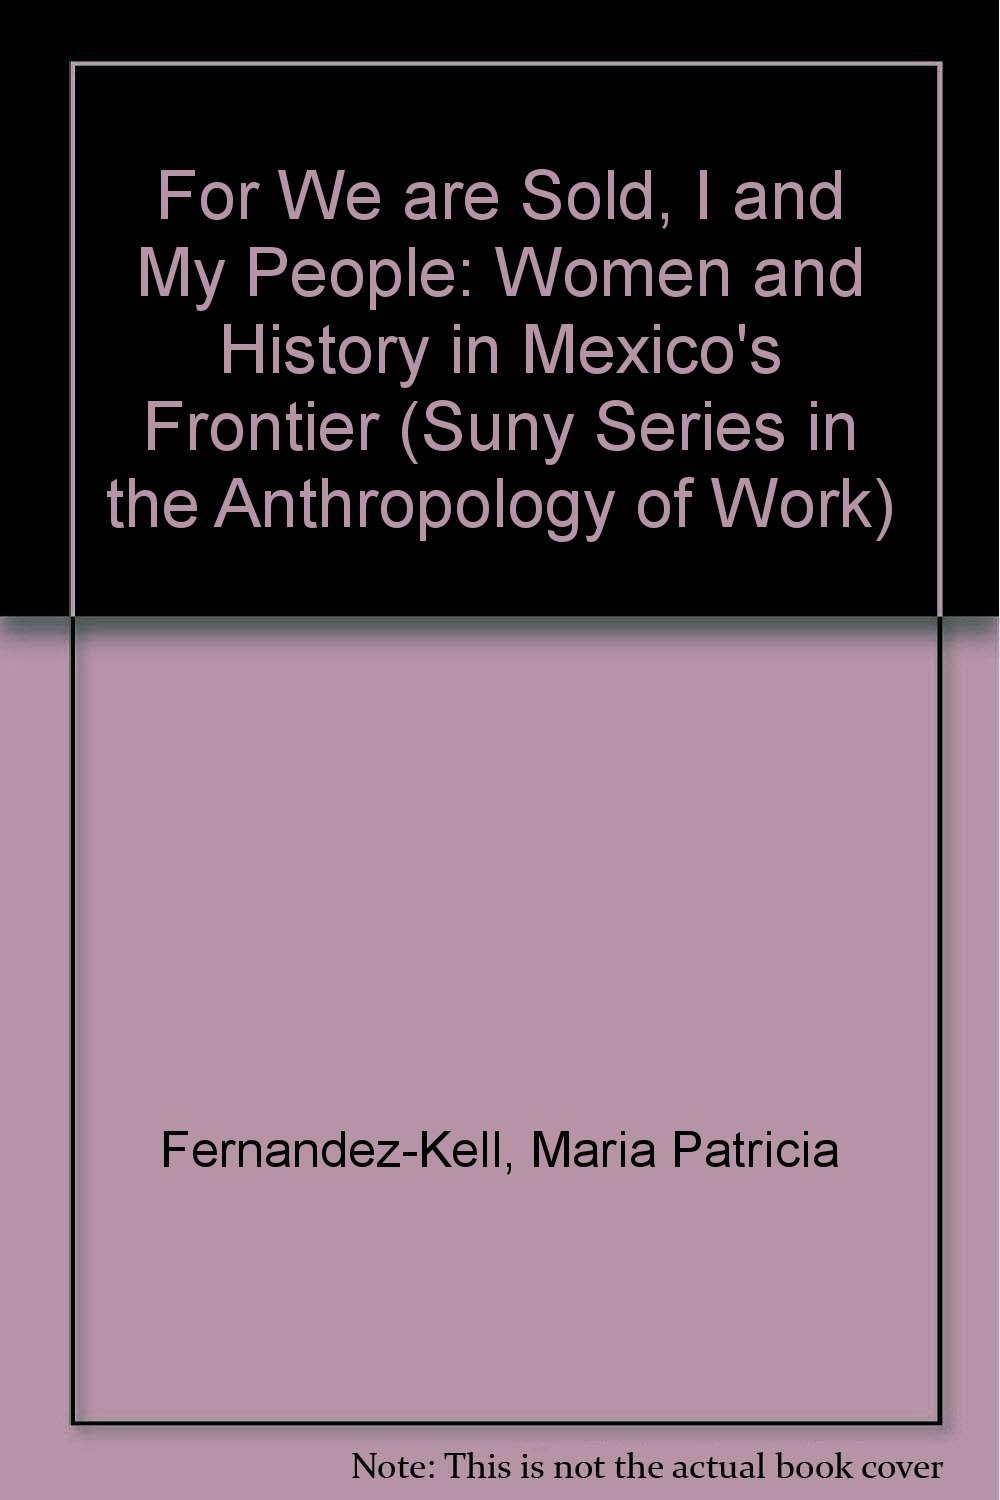 For We Are Sold, I and My People: Women and Industry in Mexico's Frontier (Suny Series in the Anthropology of Work)